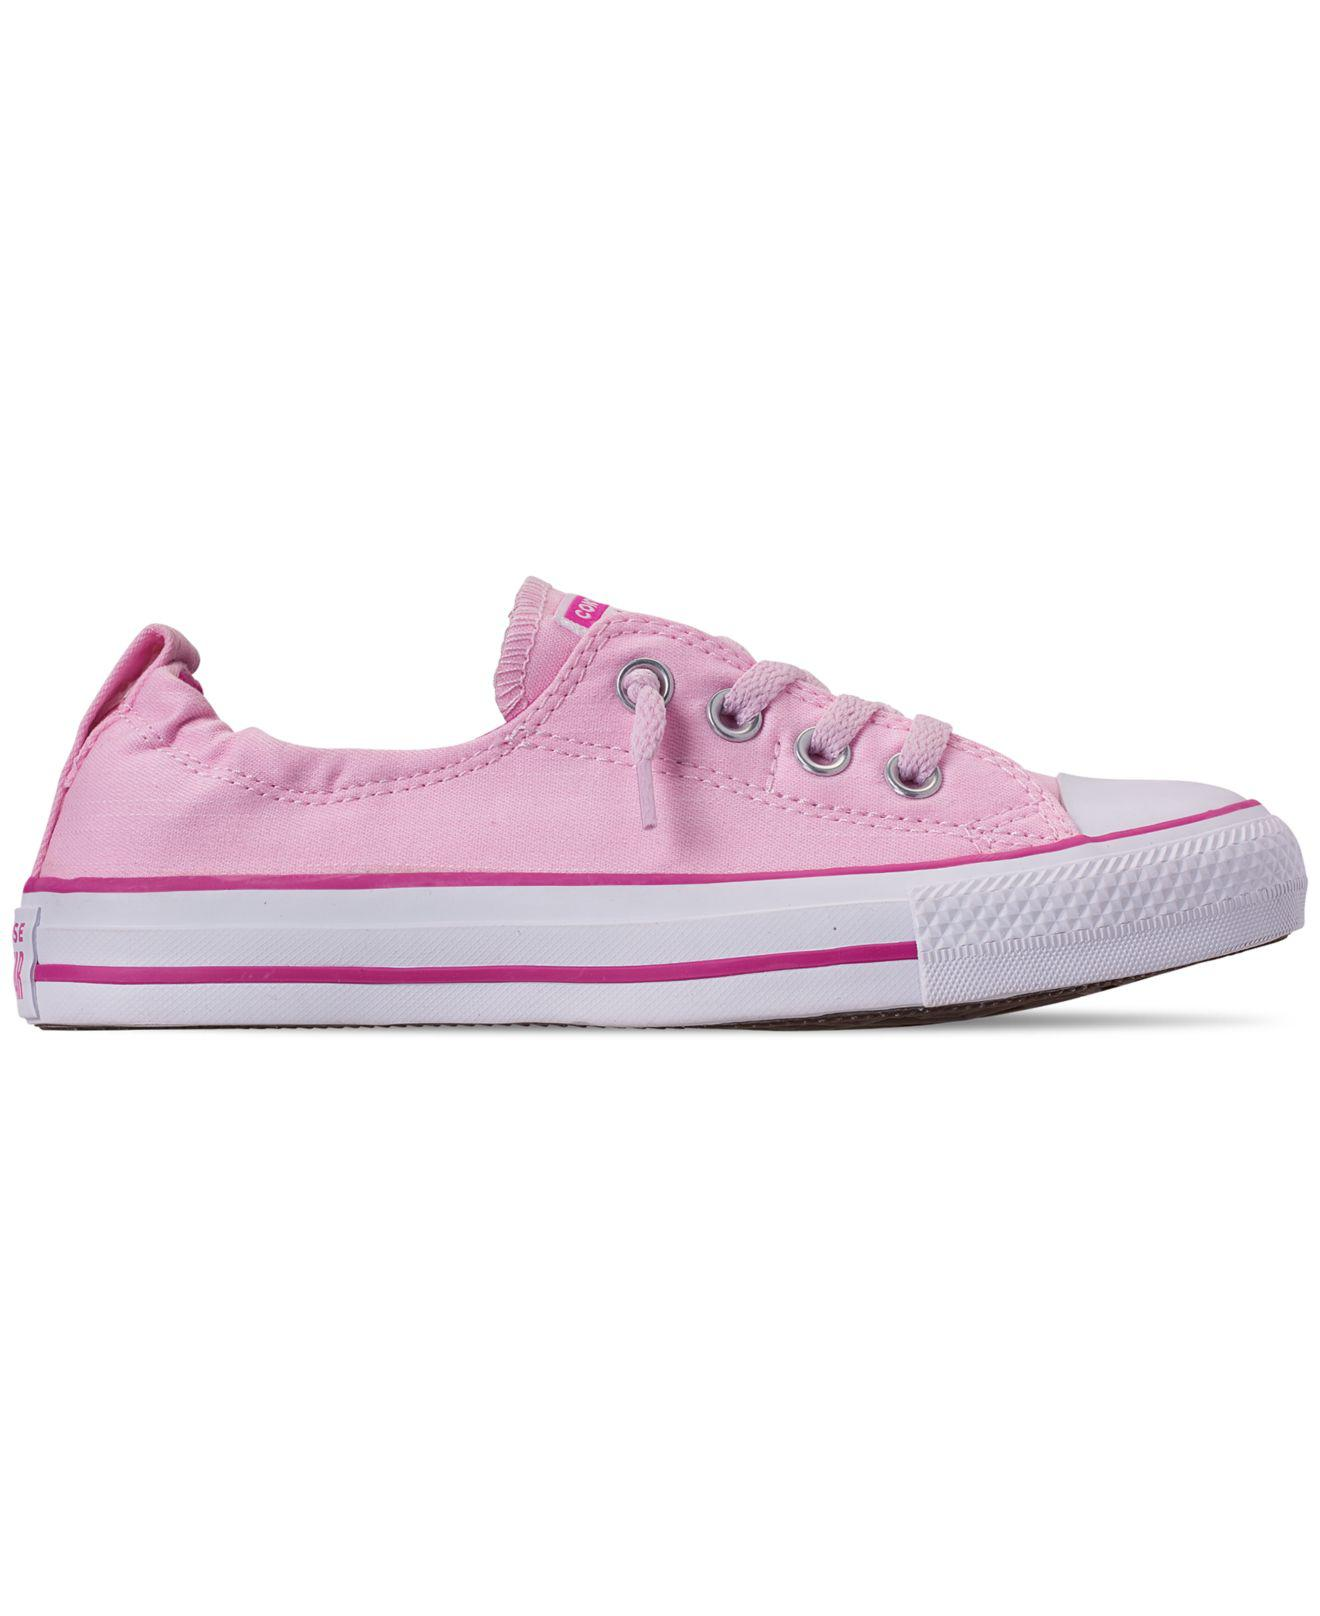 Lyst - Converse Chuck Taylor All Star Shoreline Slip-on Sneaker (women) in  Pink - Save 2% 6f015a06e